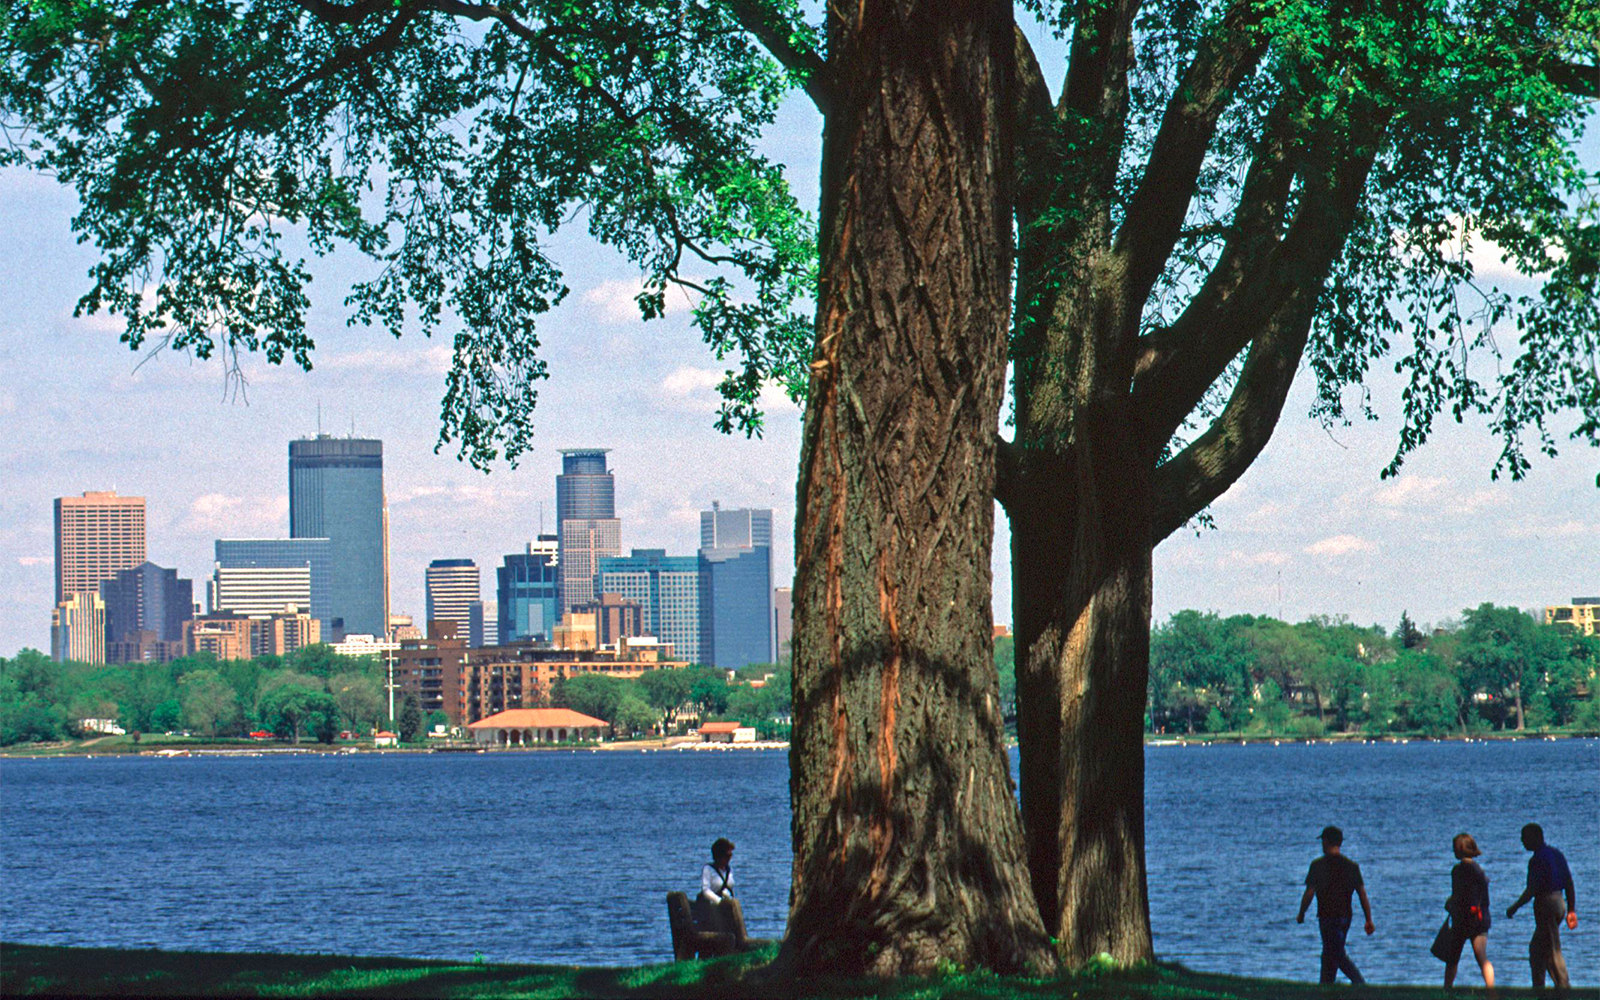 America's Best Cities for Picnics: No. 17 Minneapolis/St. Paul